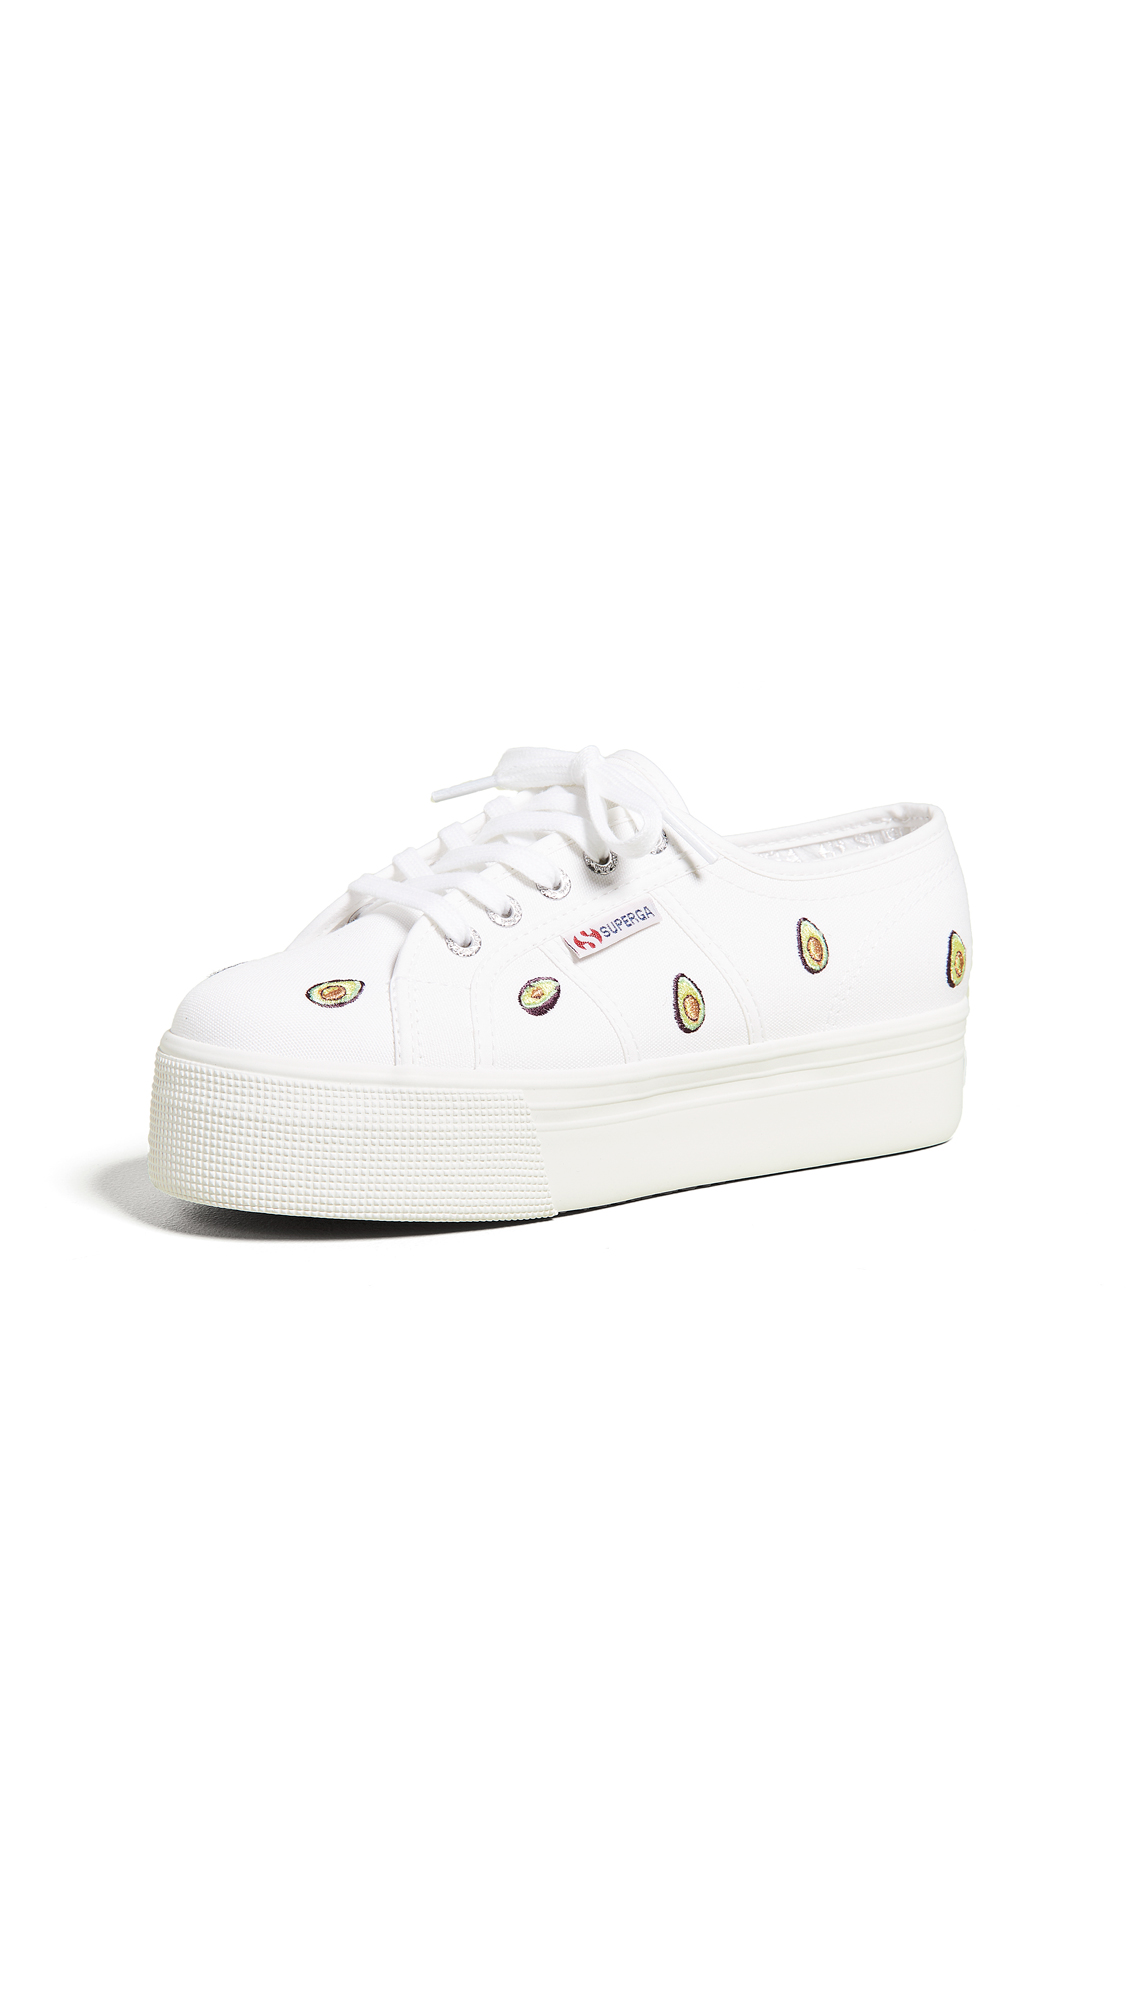 Superga 2750 Avocado Cotw Platform Sneakers - White Multi